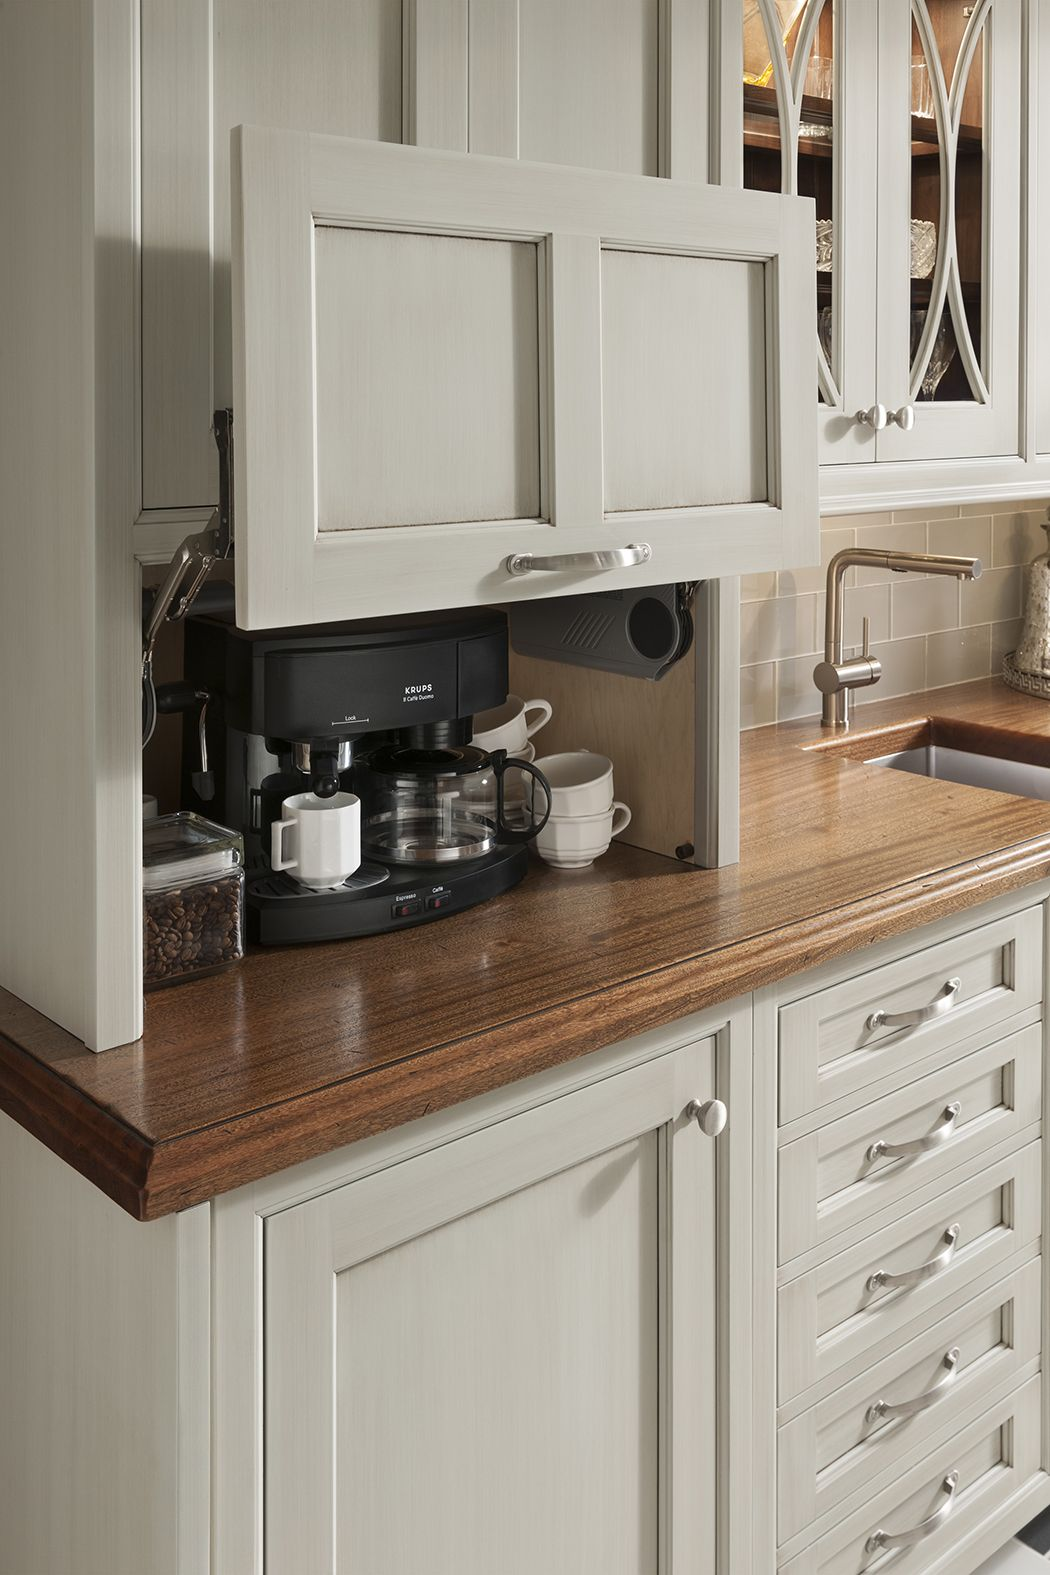 Trending In 2016 Built In Wet Bars Coffee Stations And